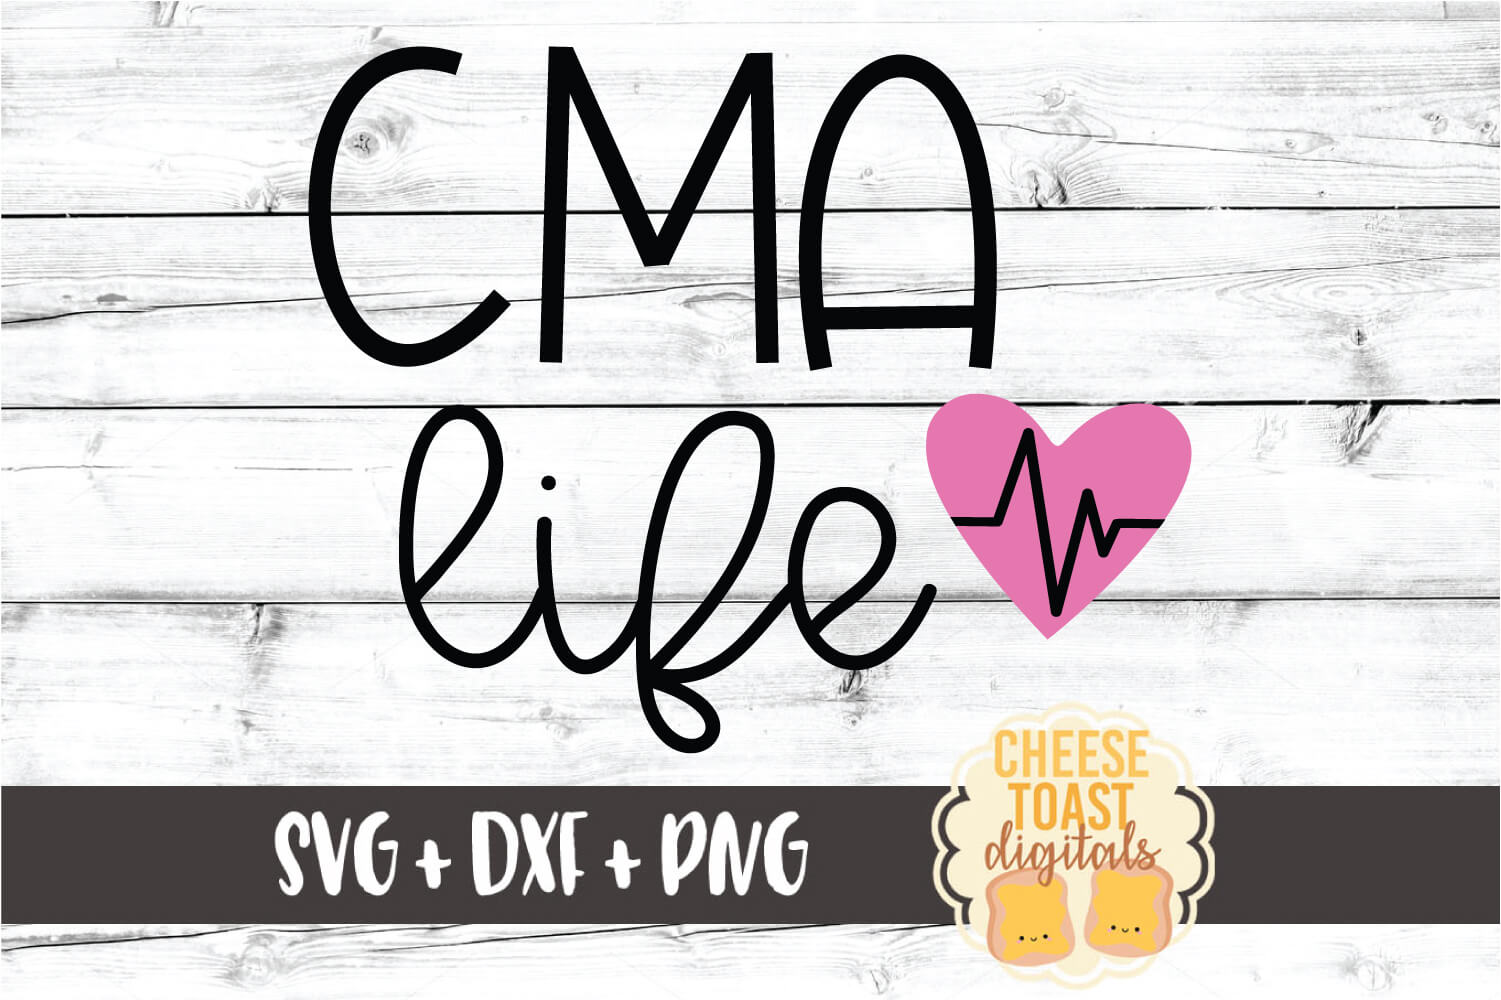 CMA Life - Certified Medical Assistant SVG PNG DXF Cut Files example image 2